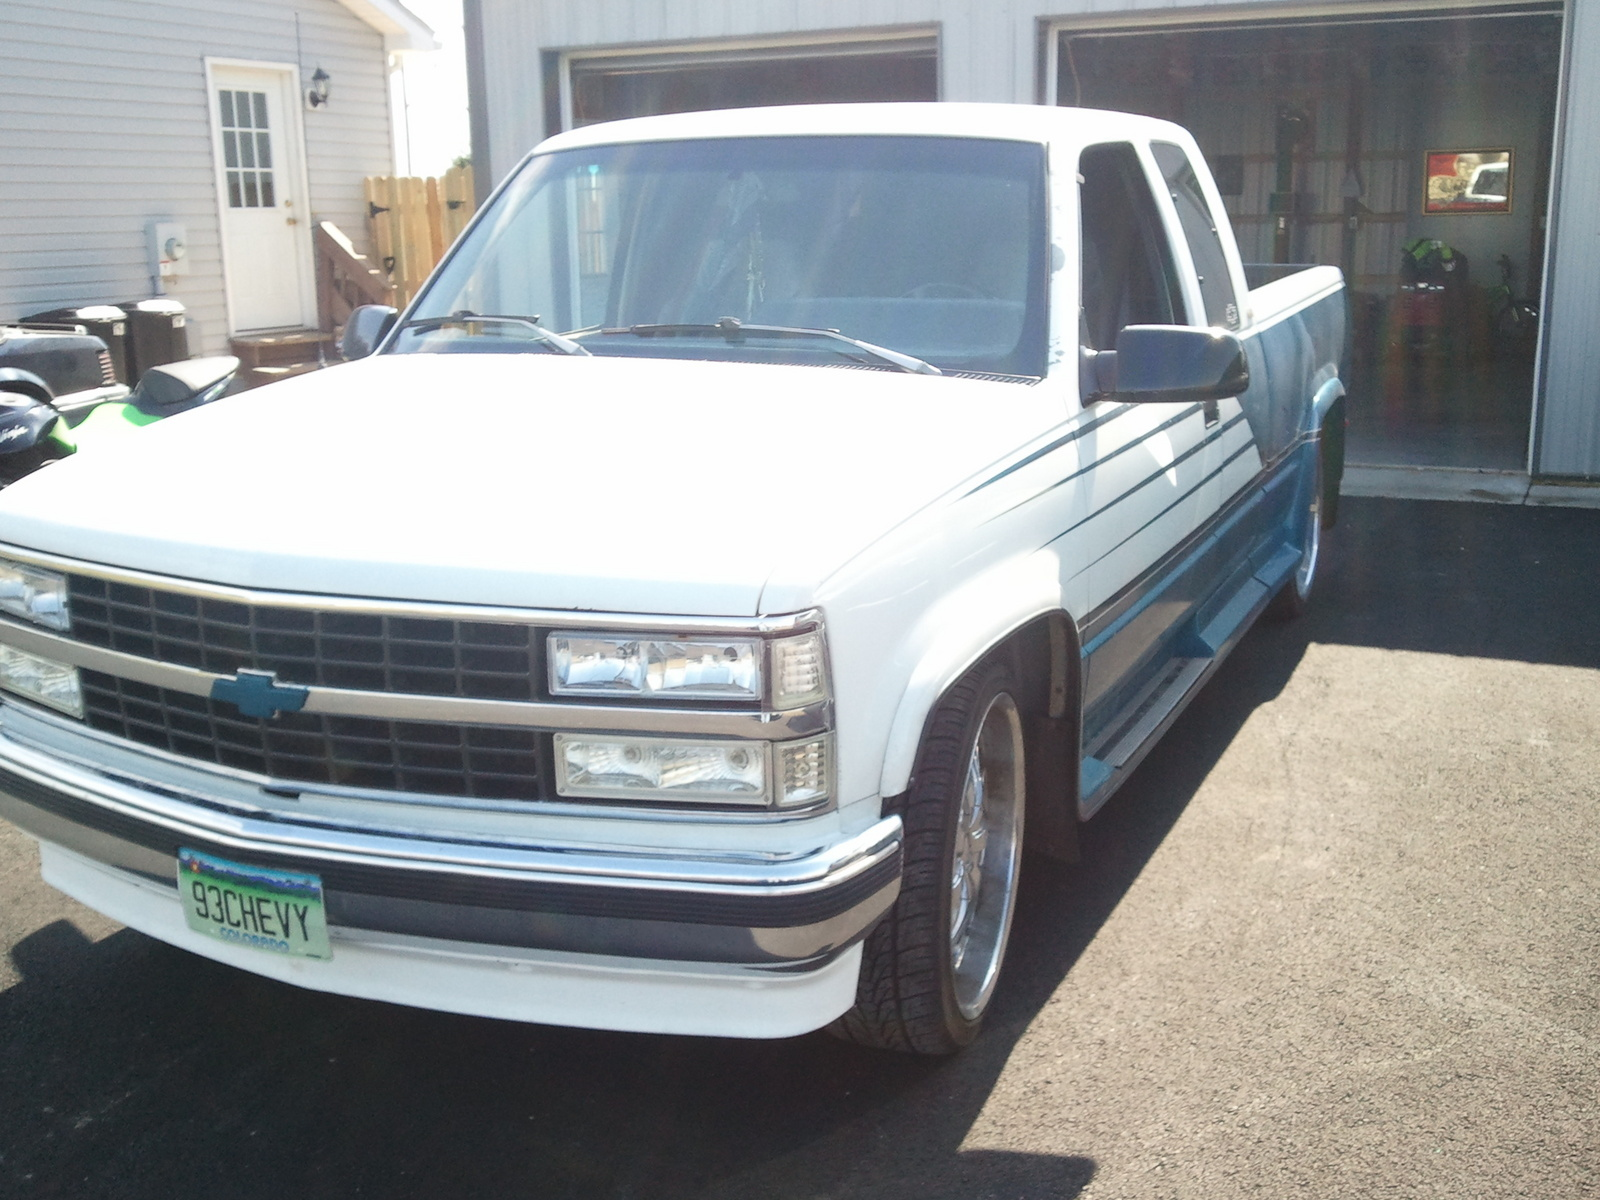 Chevrolet C/K 1500 Questions - im trying to cam my 93